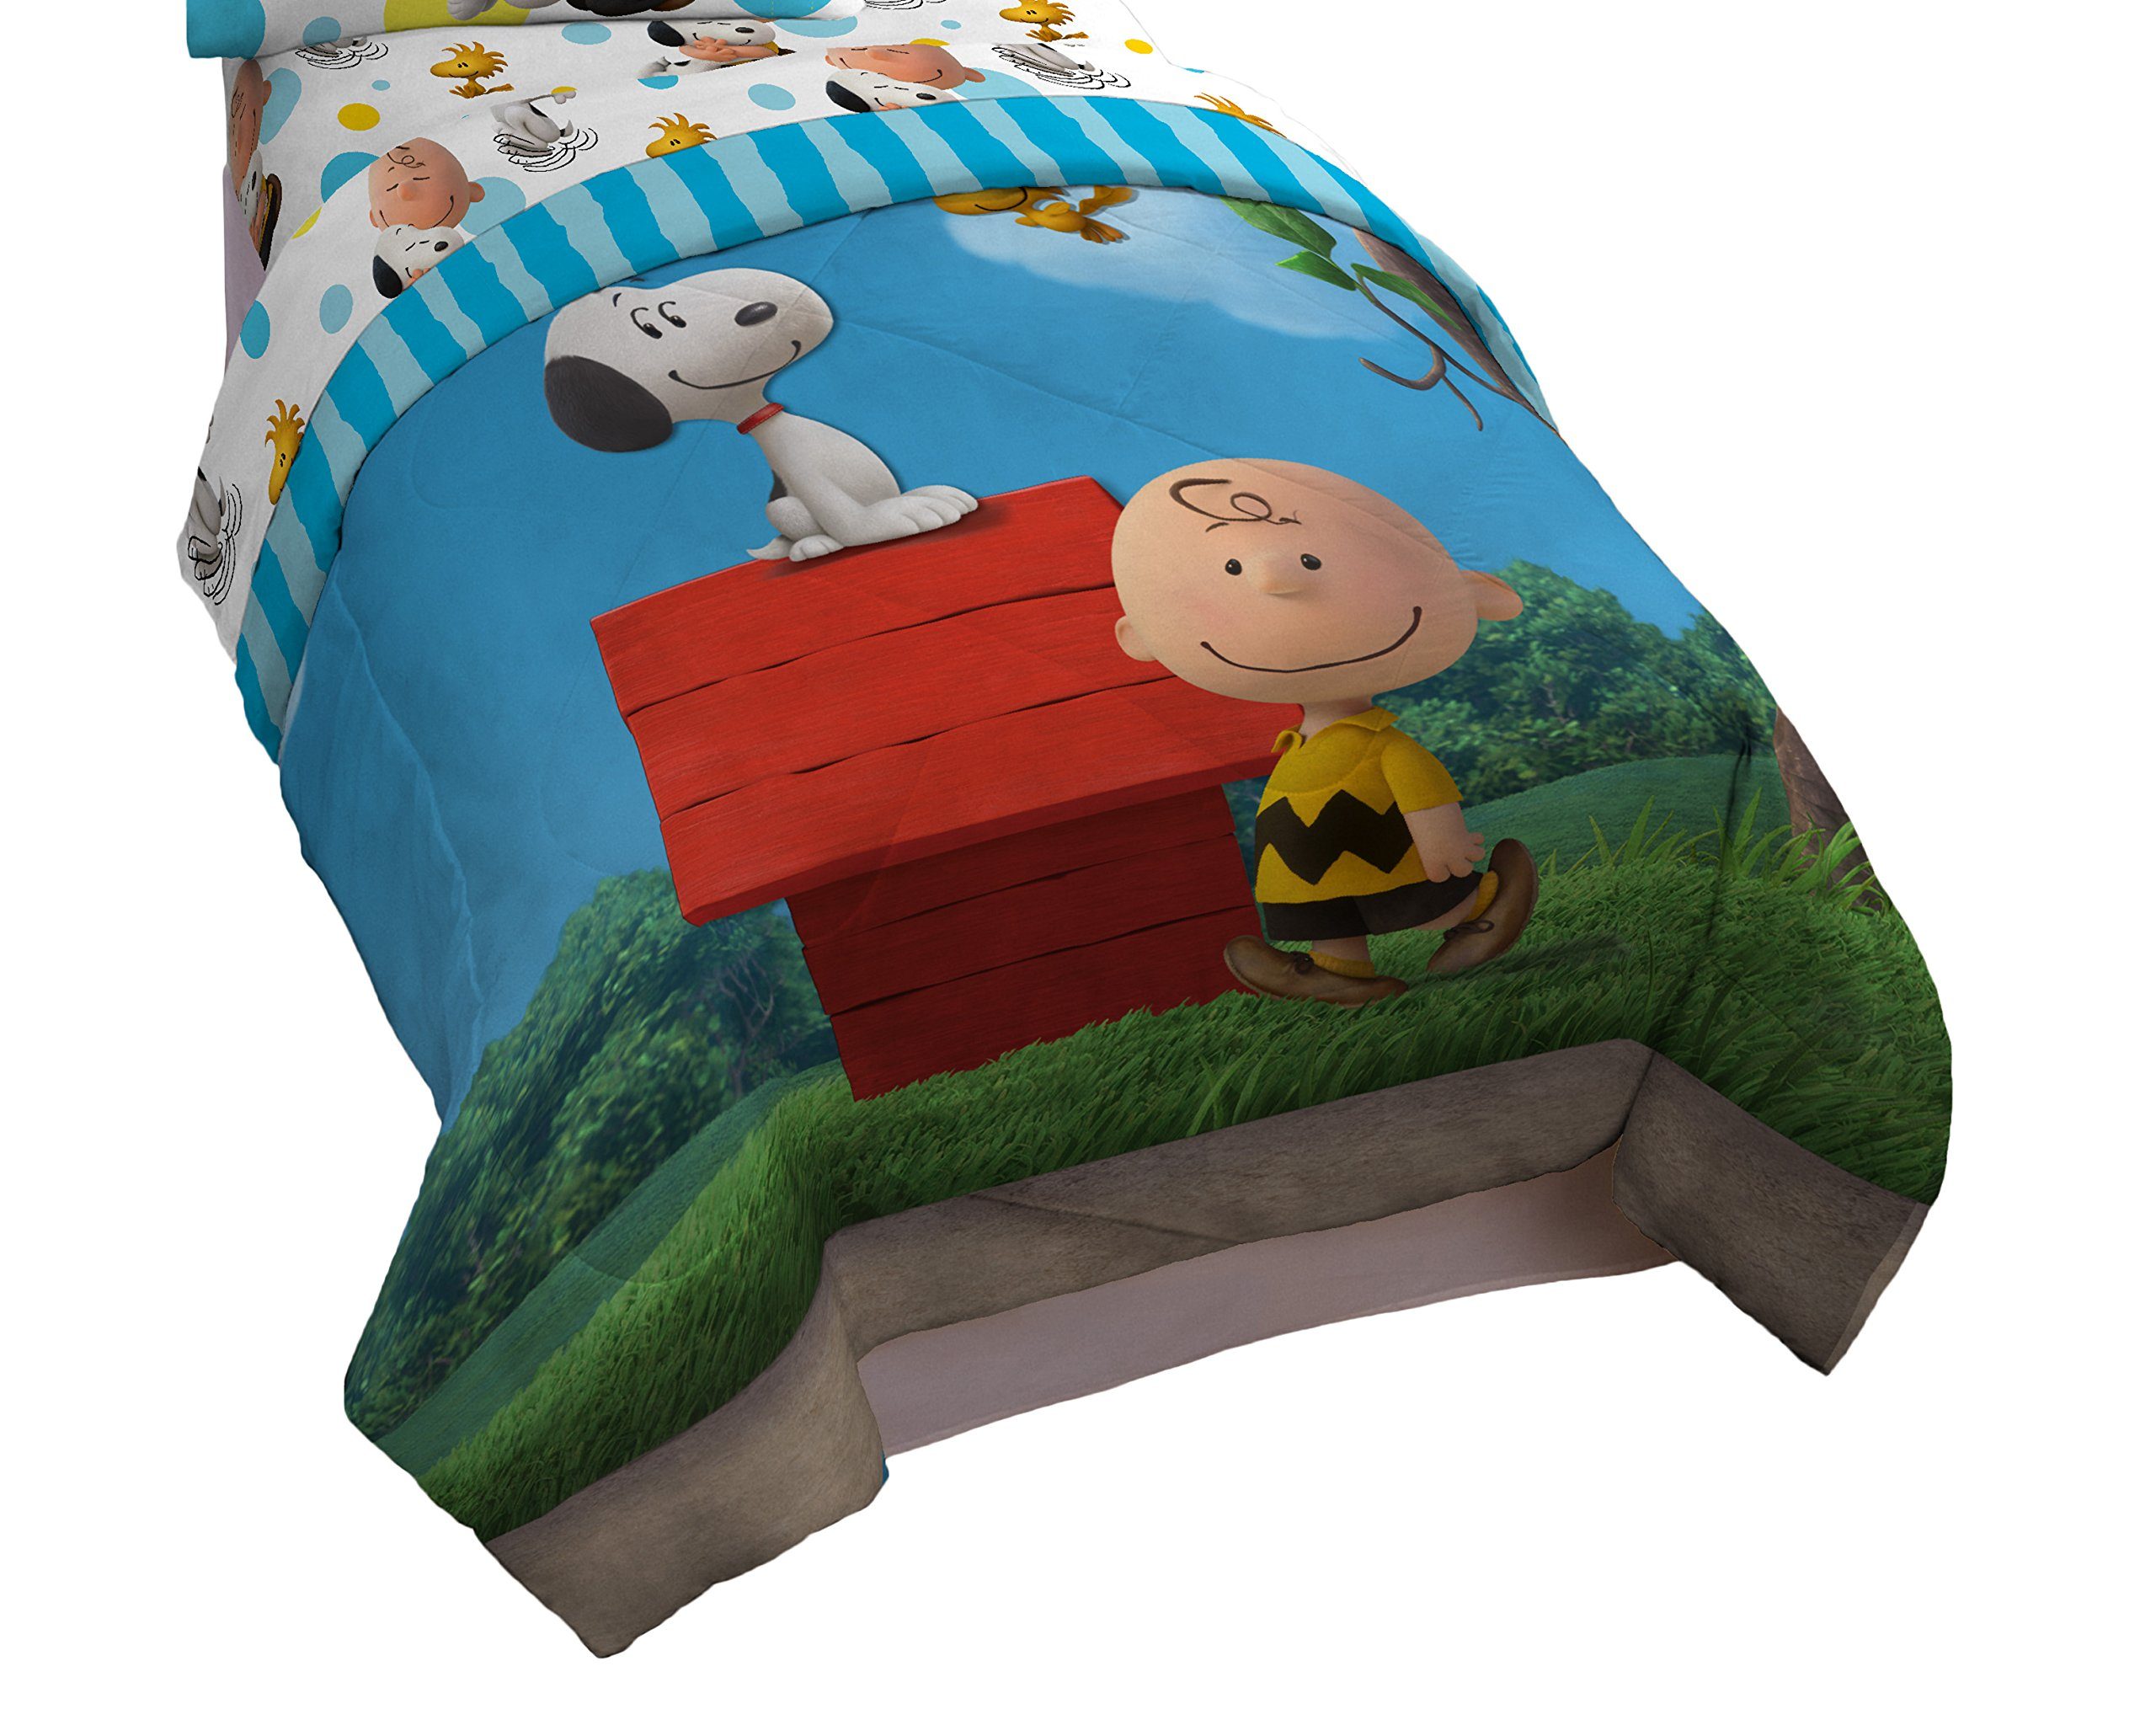 Peanuts Charlie Brown Sunny Day Twin Comforter - Super Soft Kids Reversible Bedding features Charlie Brown and Snoopy - Fade Resistant Polyester Microfiber Fill (Official Peanuts Product)